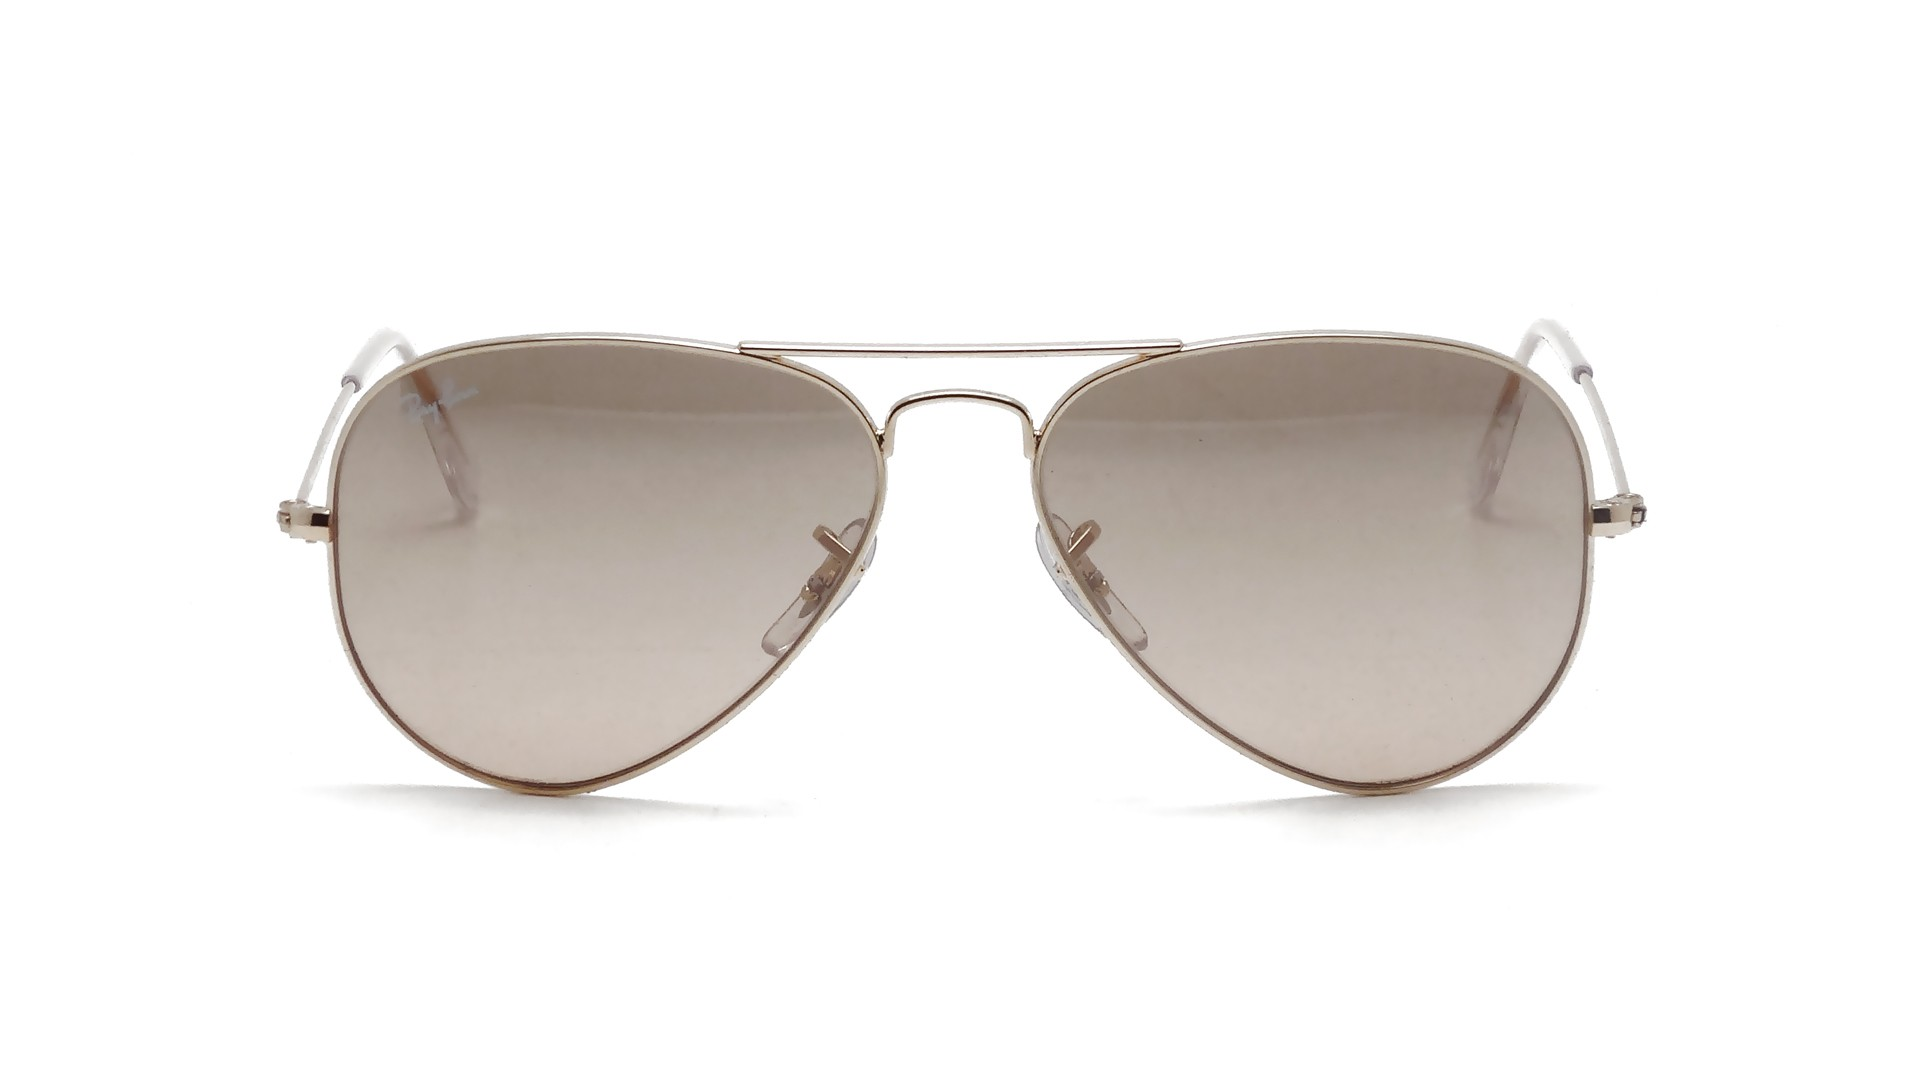 Ray ban aviator large metal gold rb3025 001 3e 55 14 for Ray ban aviator verre miroir